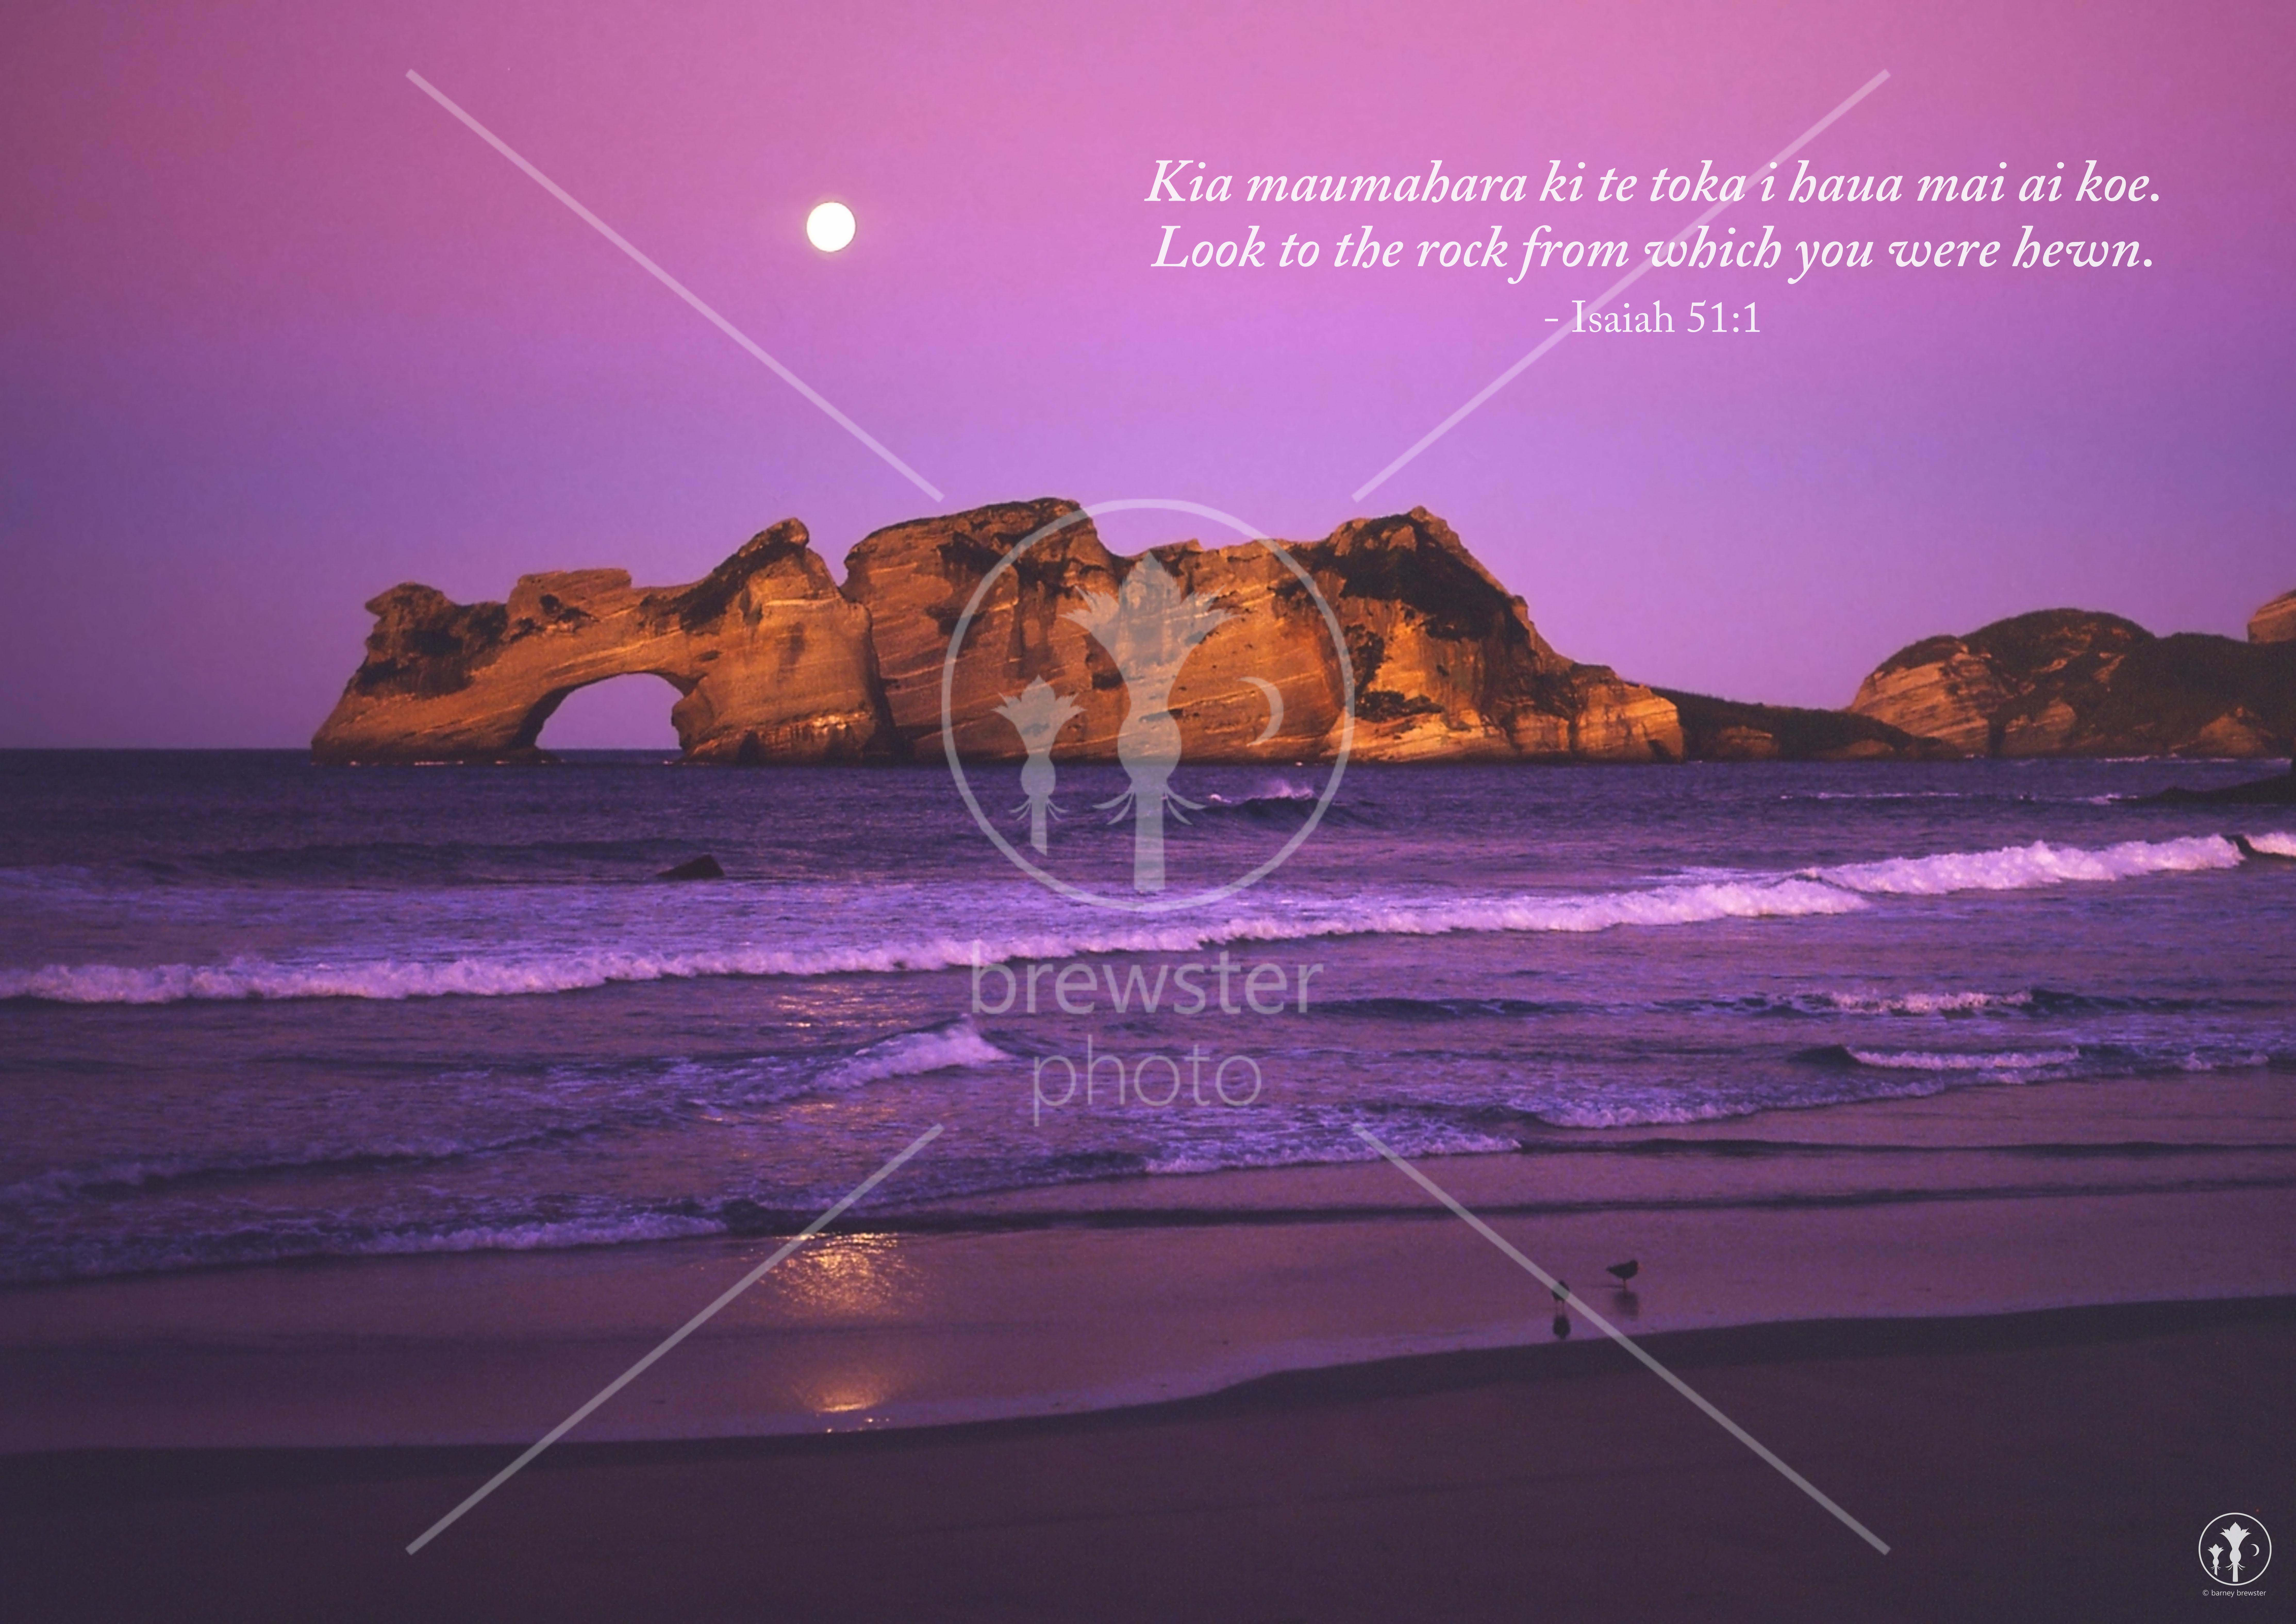 New Zealand by Night - A4 Printable Posters with Quotes (Pack of 9) by Barney Brewster